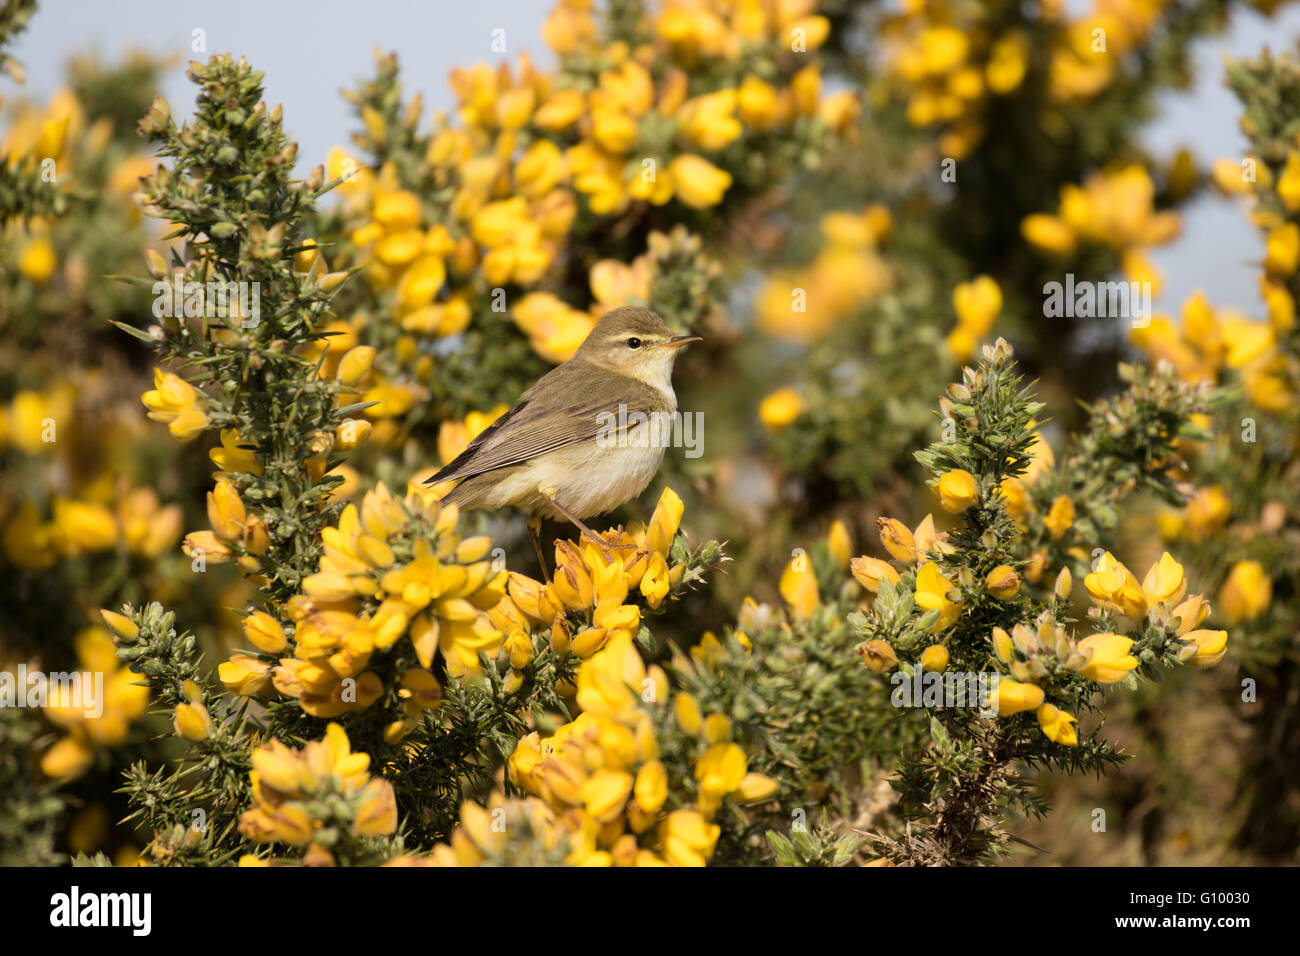 Willow Warbler on gorse - Stock Image